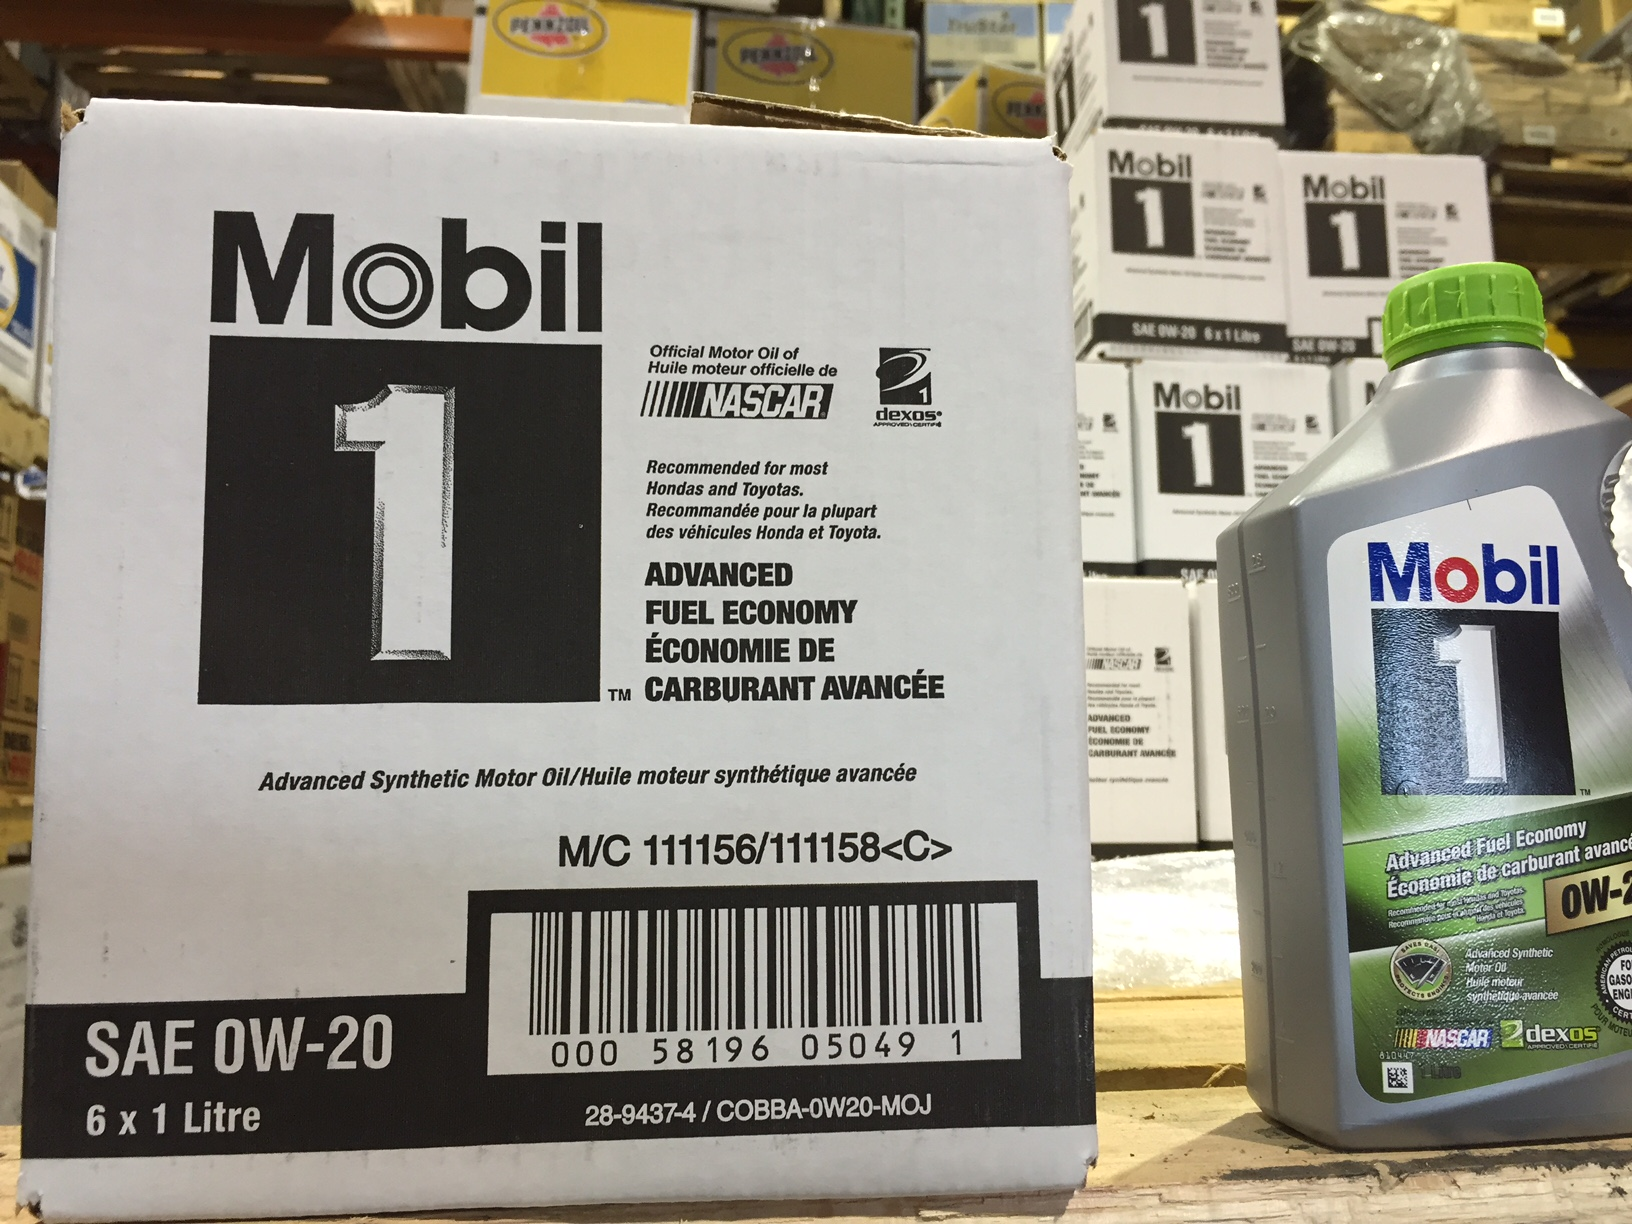 18775 - Mobil 1 0w20 0w40 5w50 (1L bottle) USA